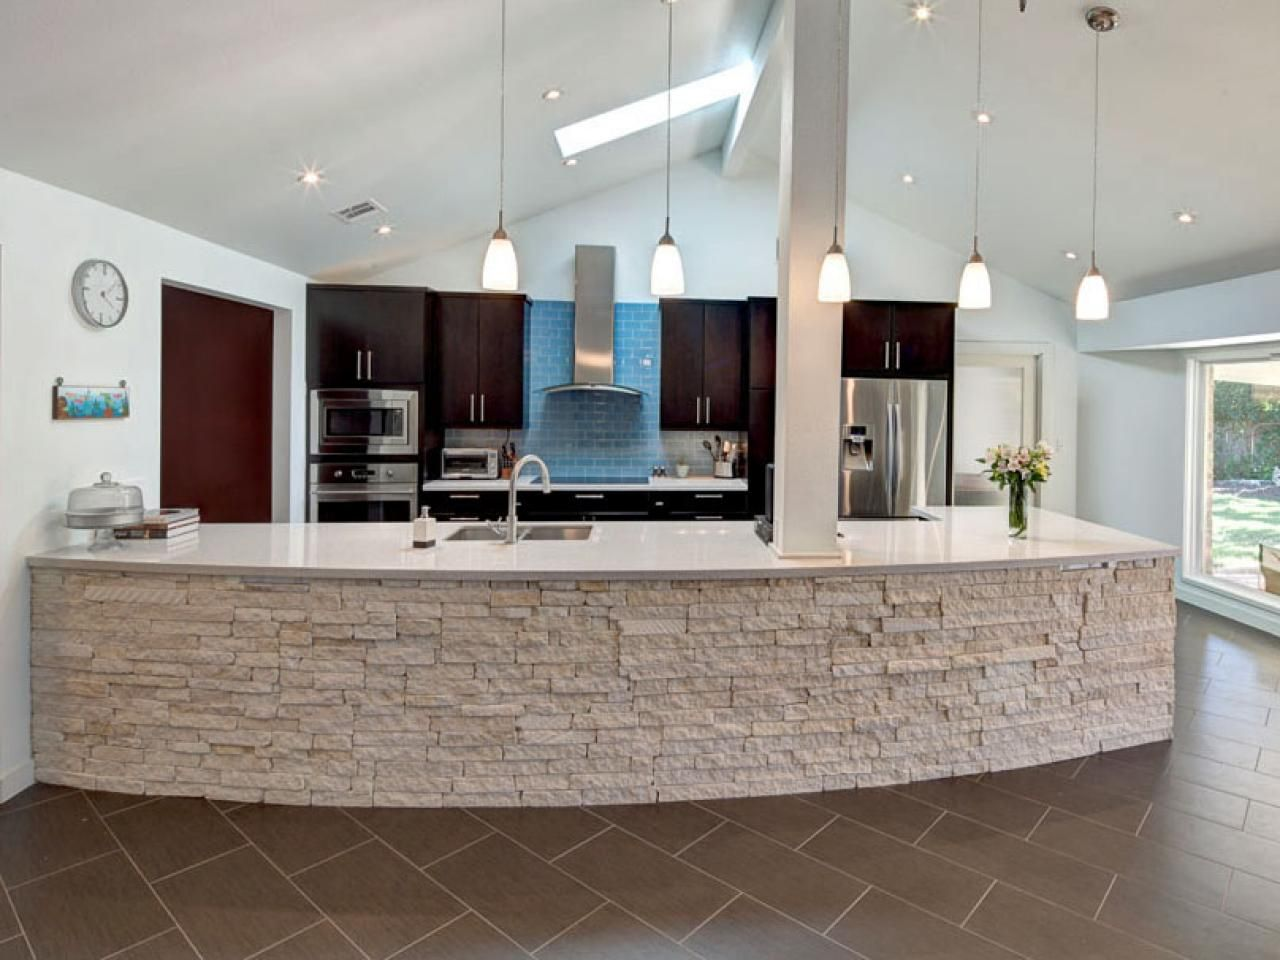 Kitchen With Stone Island  Stone Island Hgtv And Kitchens Fair Kitchen Counter Top Designs Design Design Inspiration